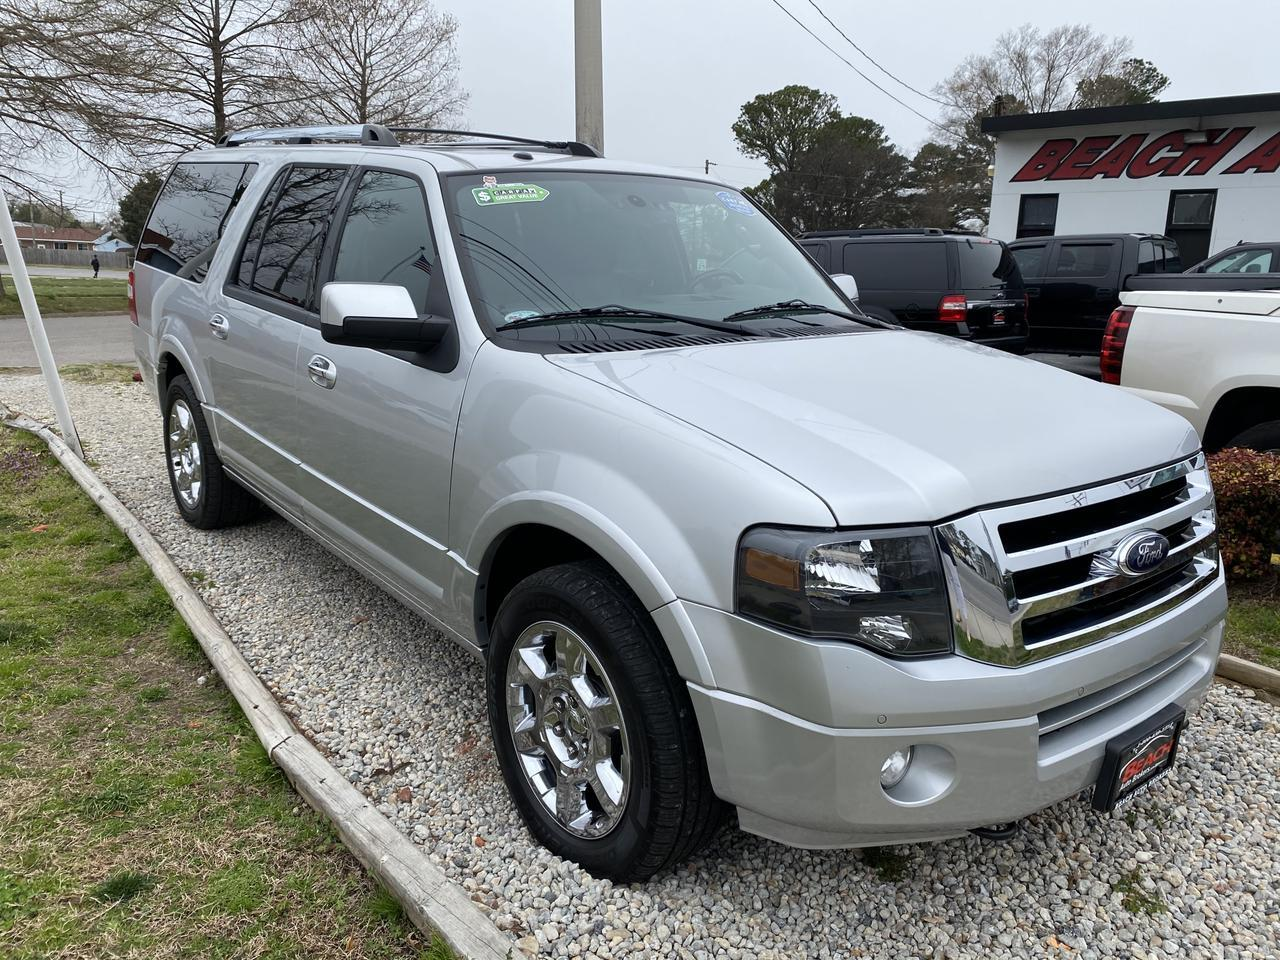 2013 FORD EXPEDITION EL LIMITED 4X4, WARRANTY, LEATHER, NAV, HEATED/COOLED SEATS, CAPTAINS CHAIRS, 1 OWNER,CLEAN CARFAX! Norfolk VA